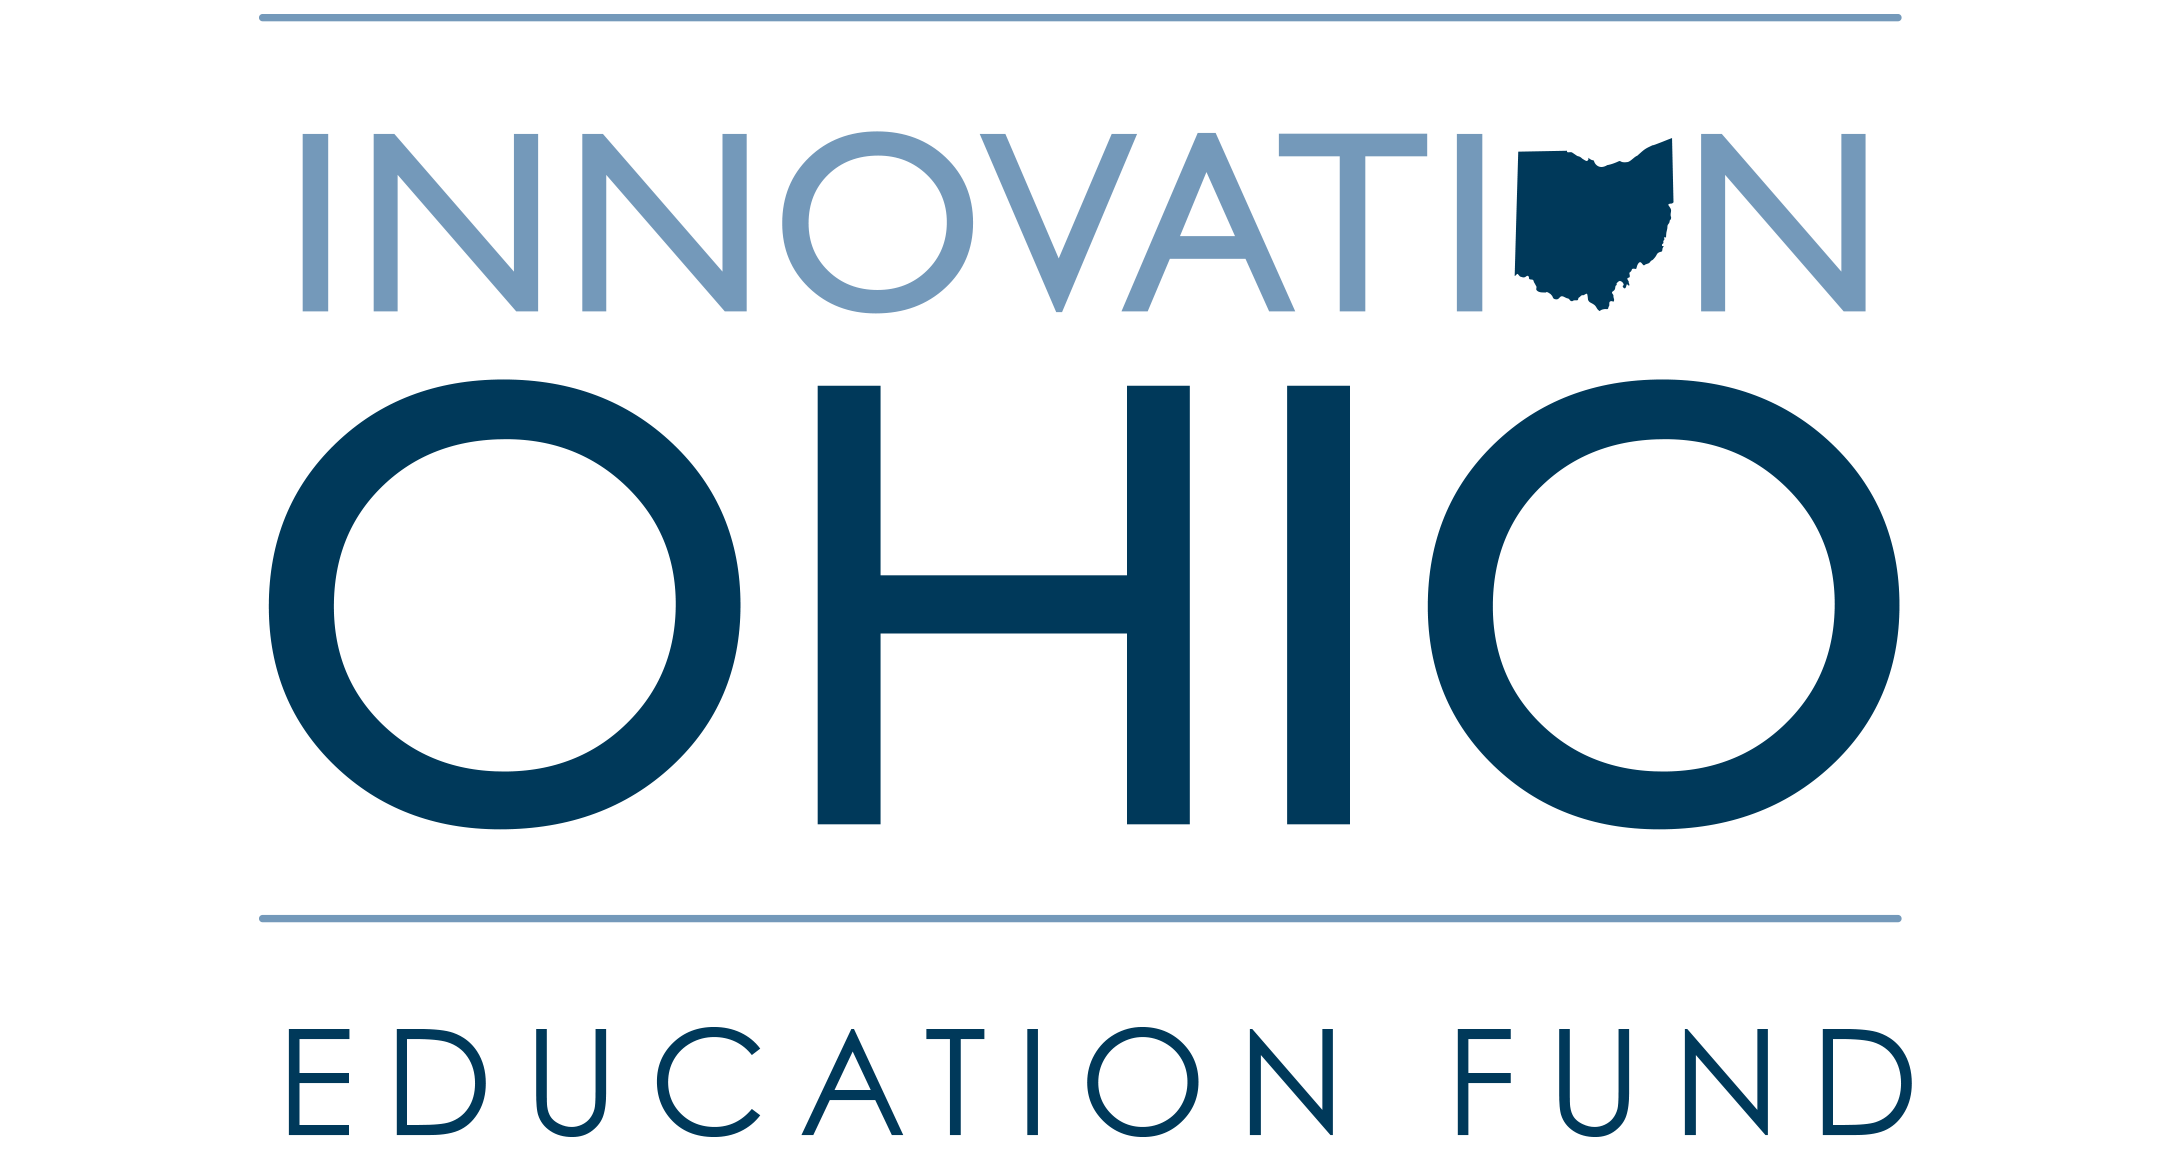 Innovation Ohio Education Fund